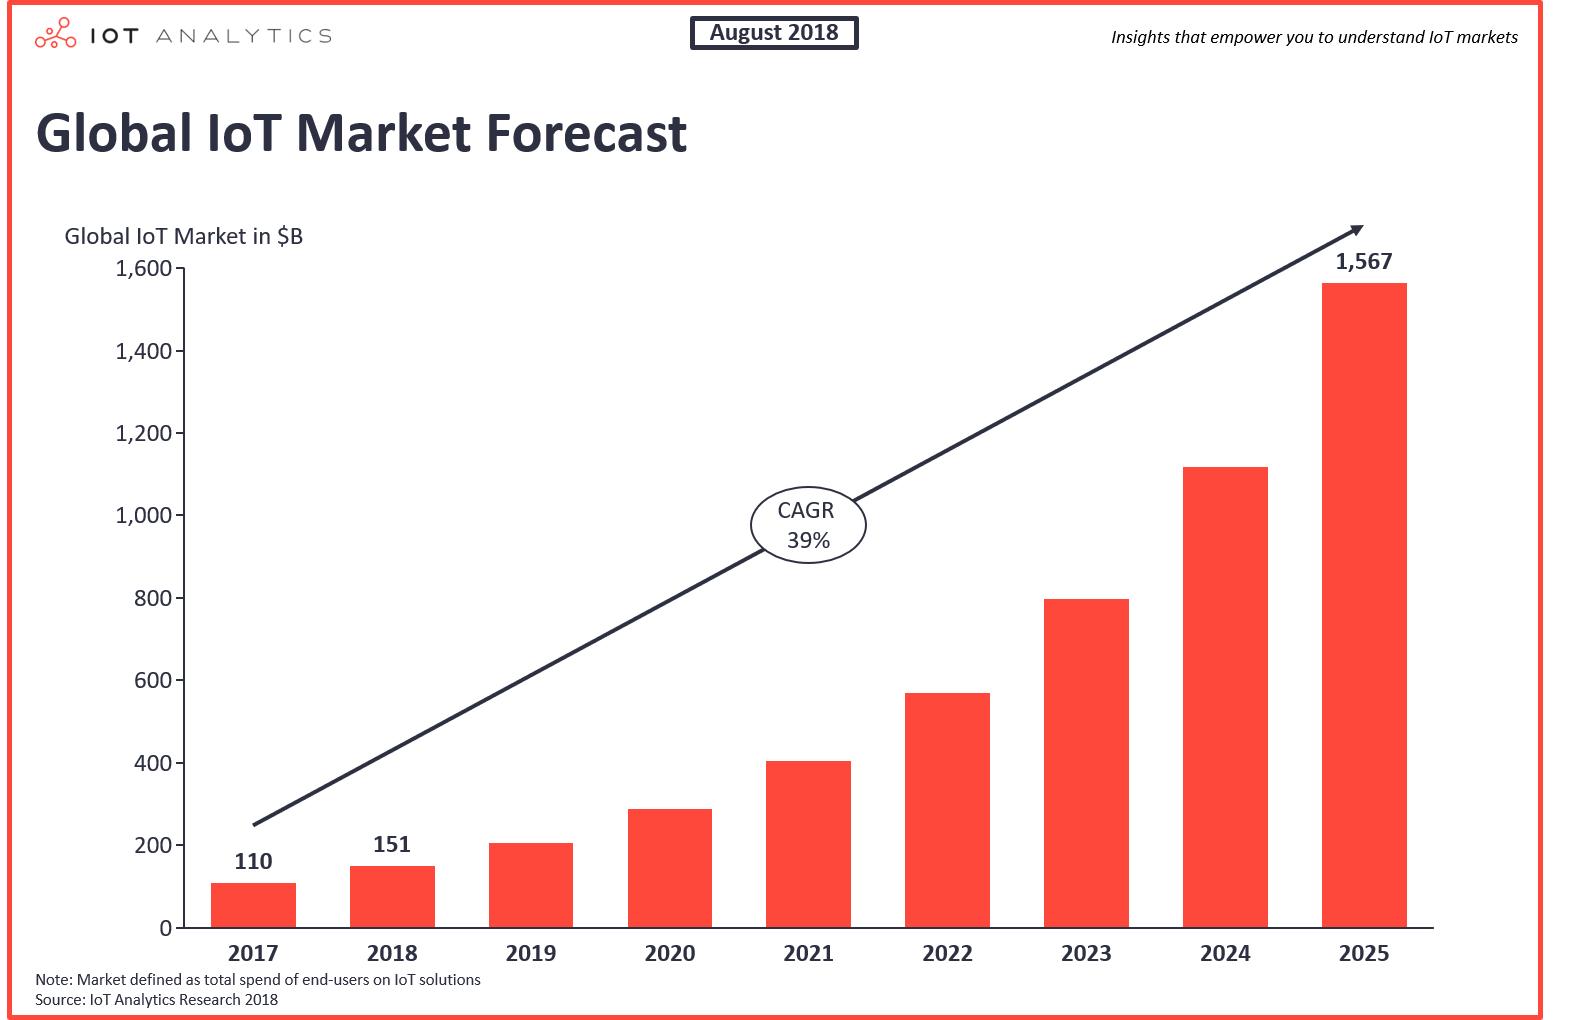 Global IoT Market Forecast 2017 - 2025